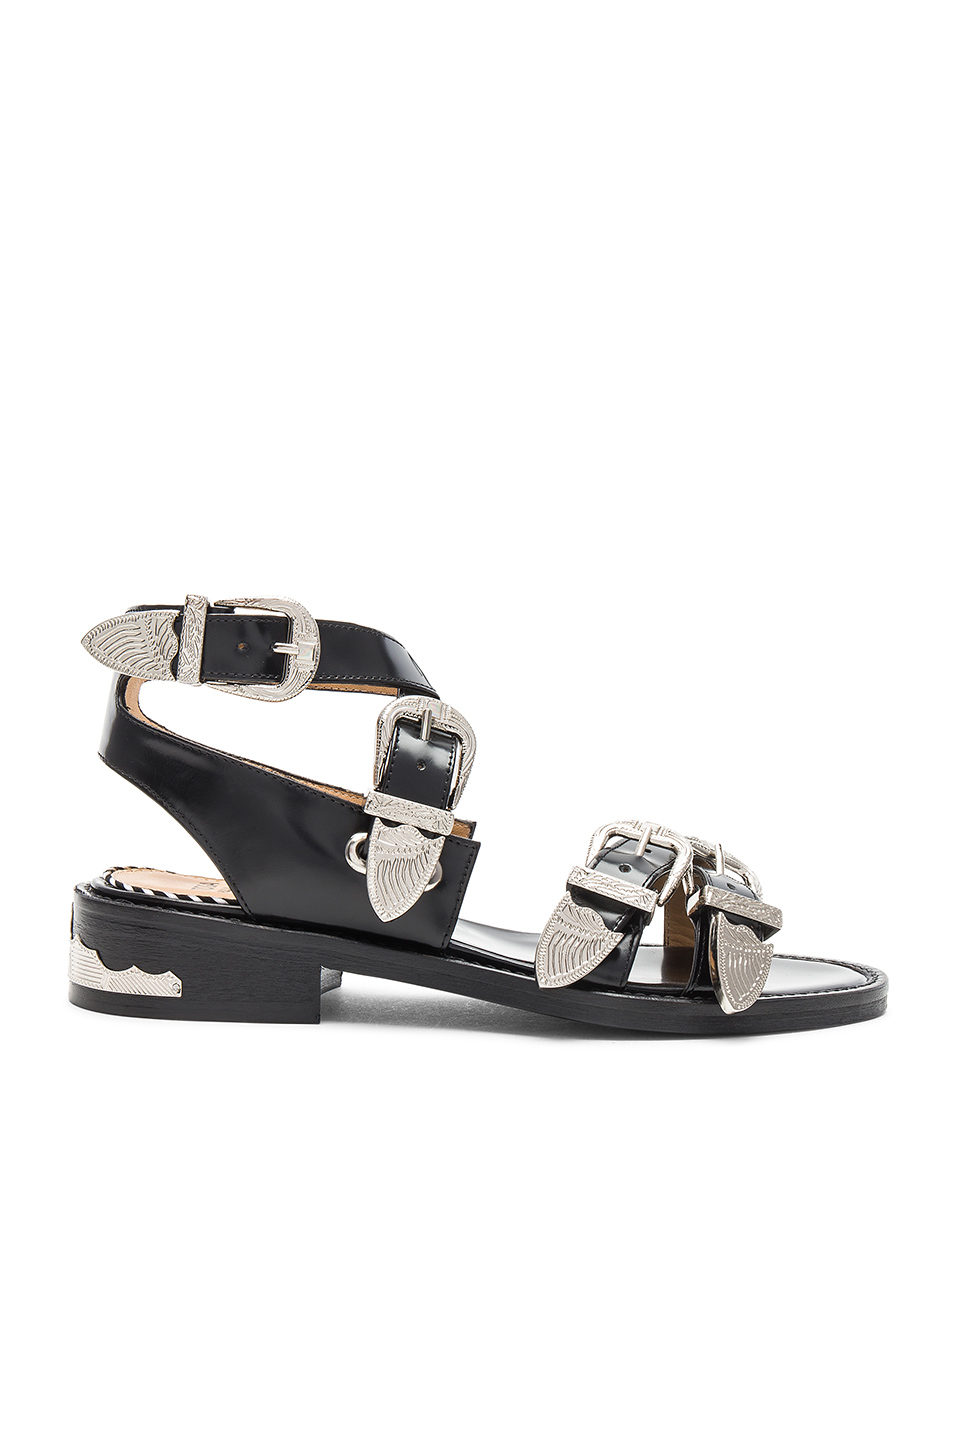 TOGA PULLA Buckle Sandal in Black Polido